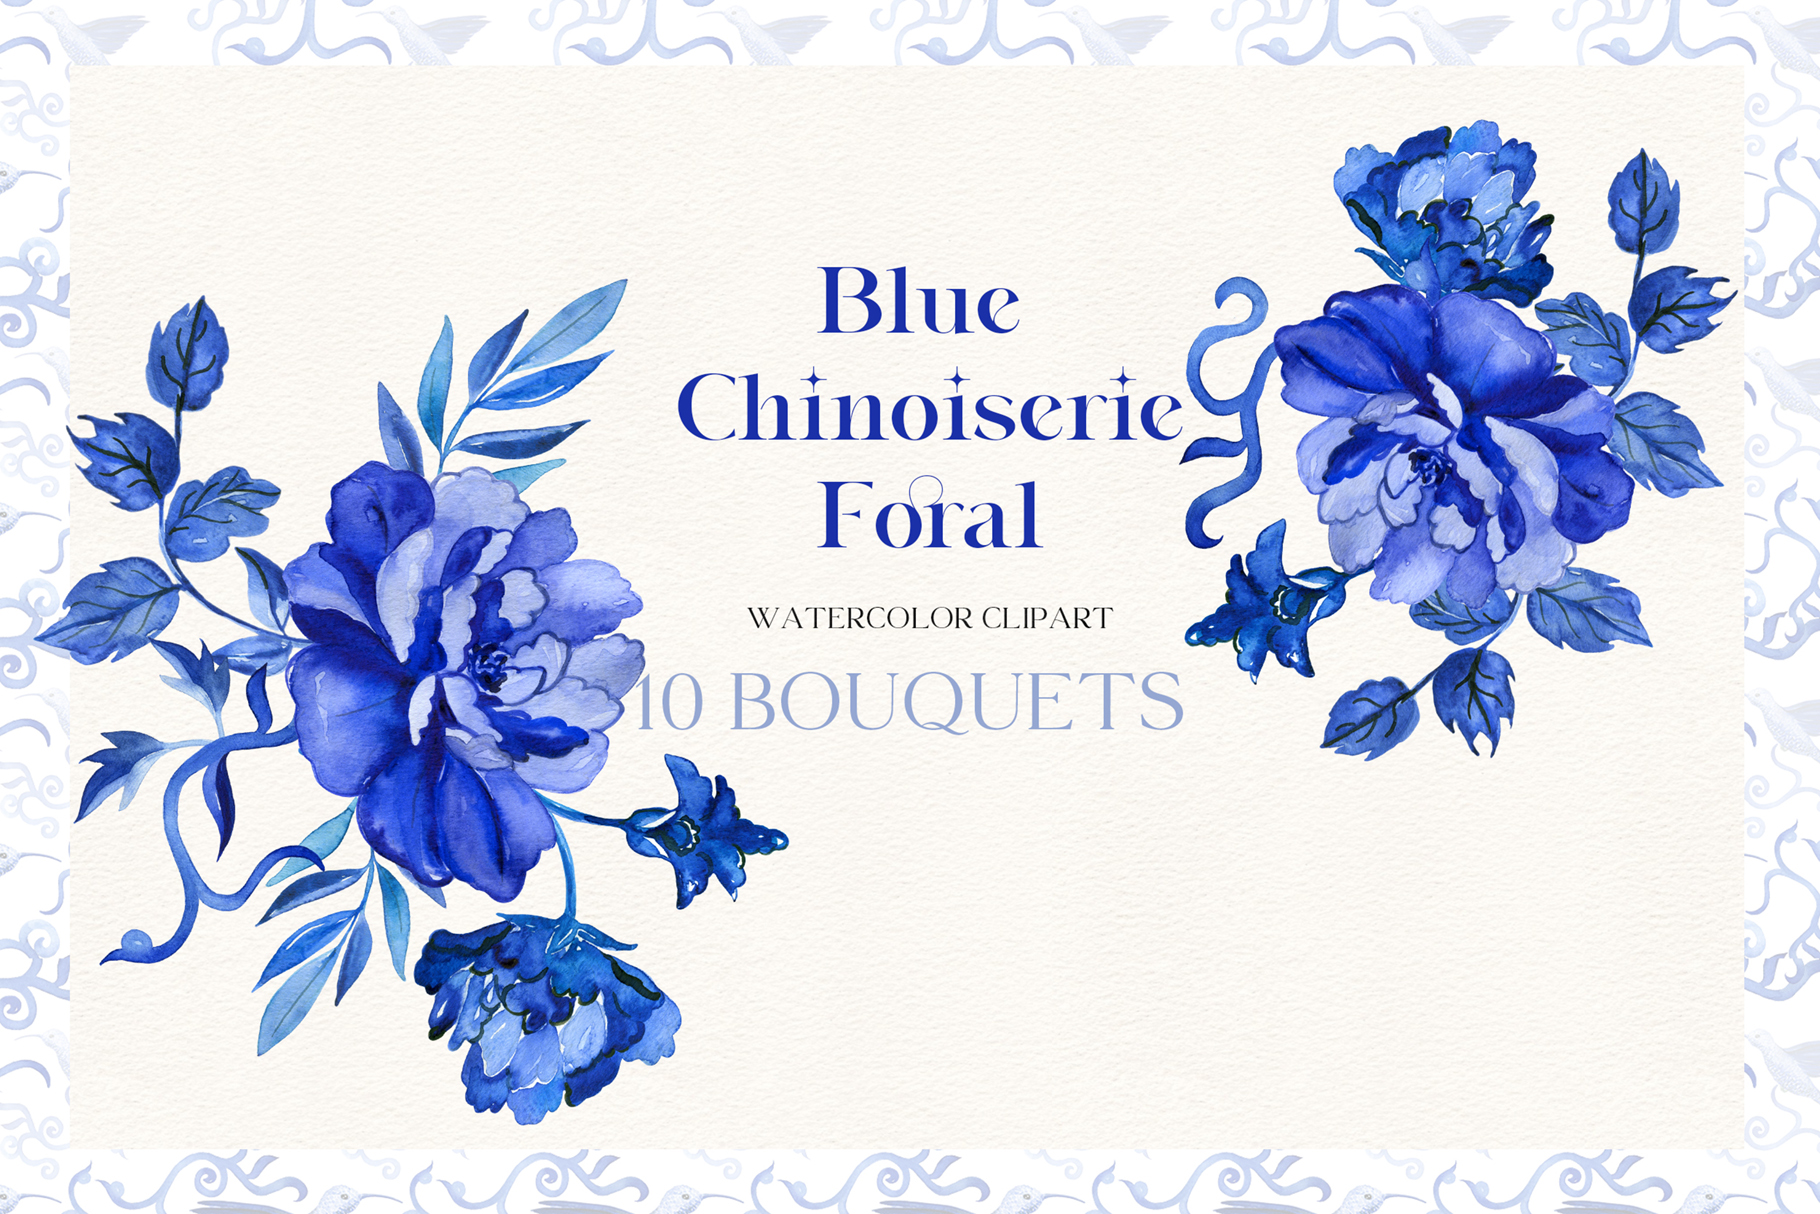 Blue Chinoiserie Floral